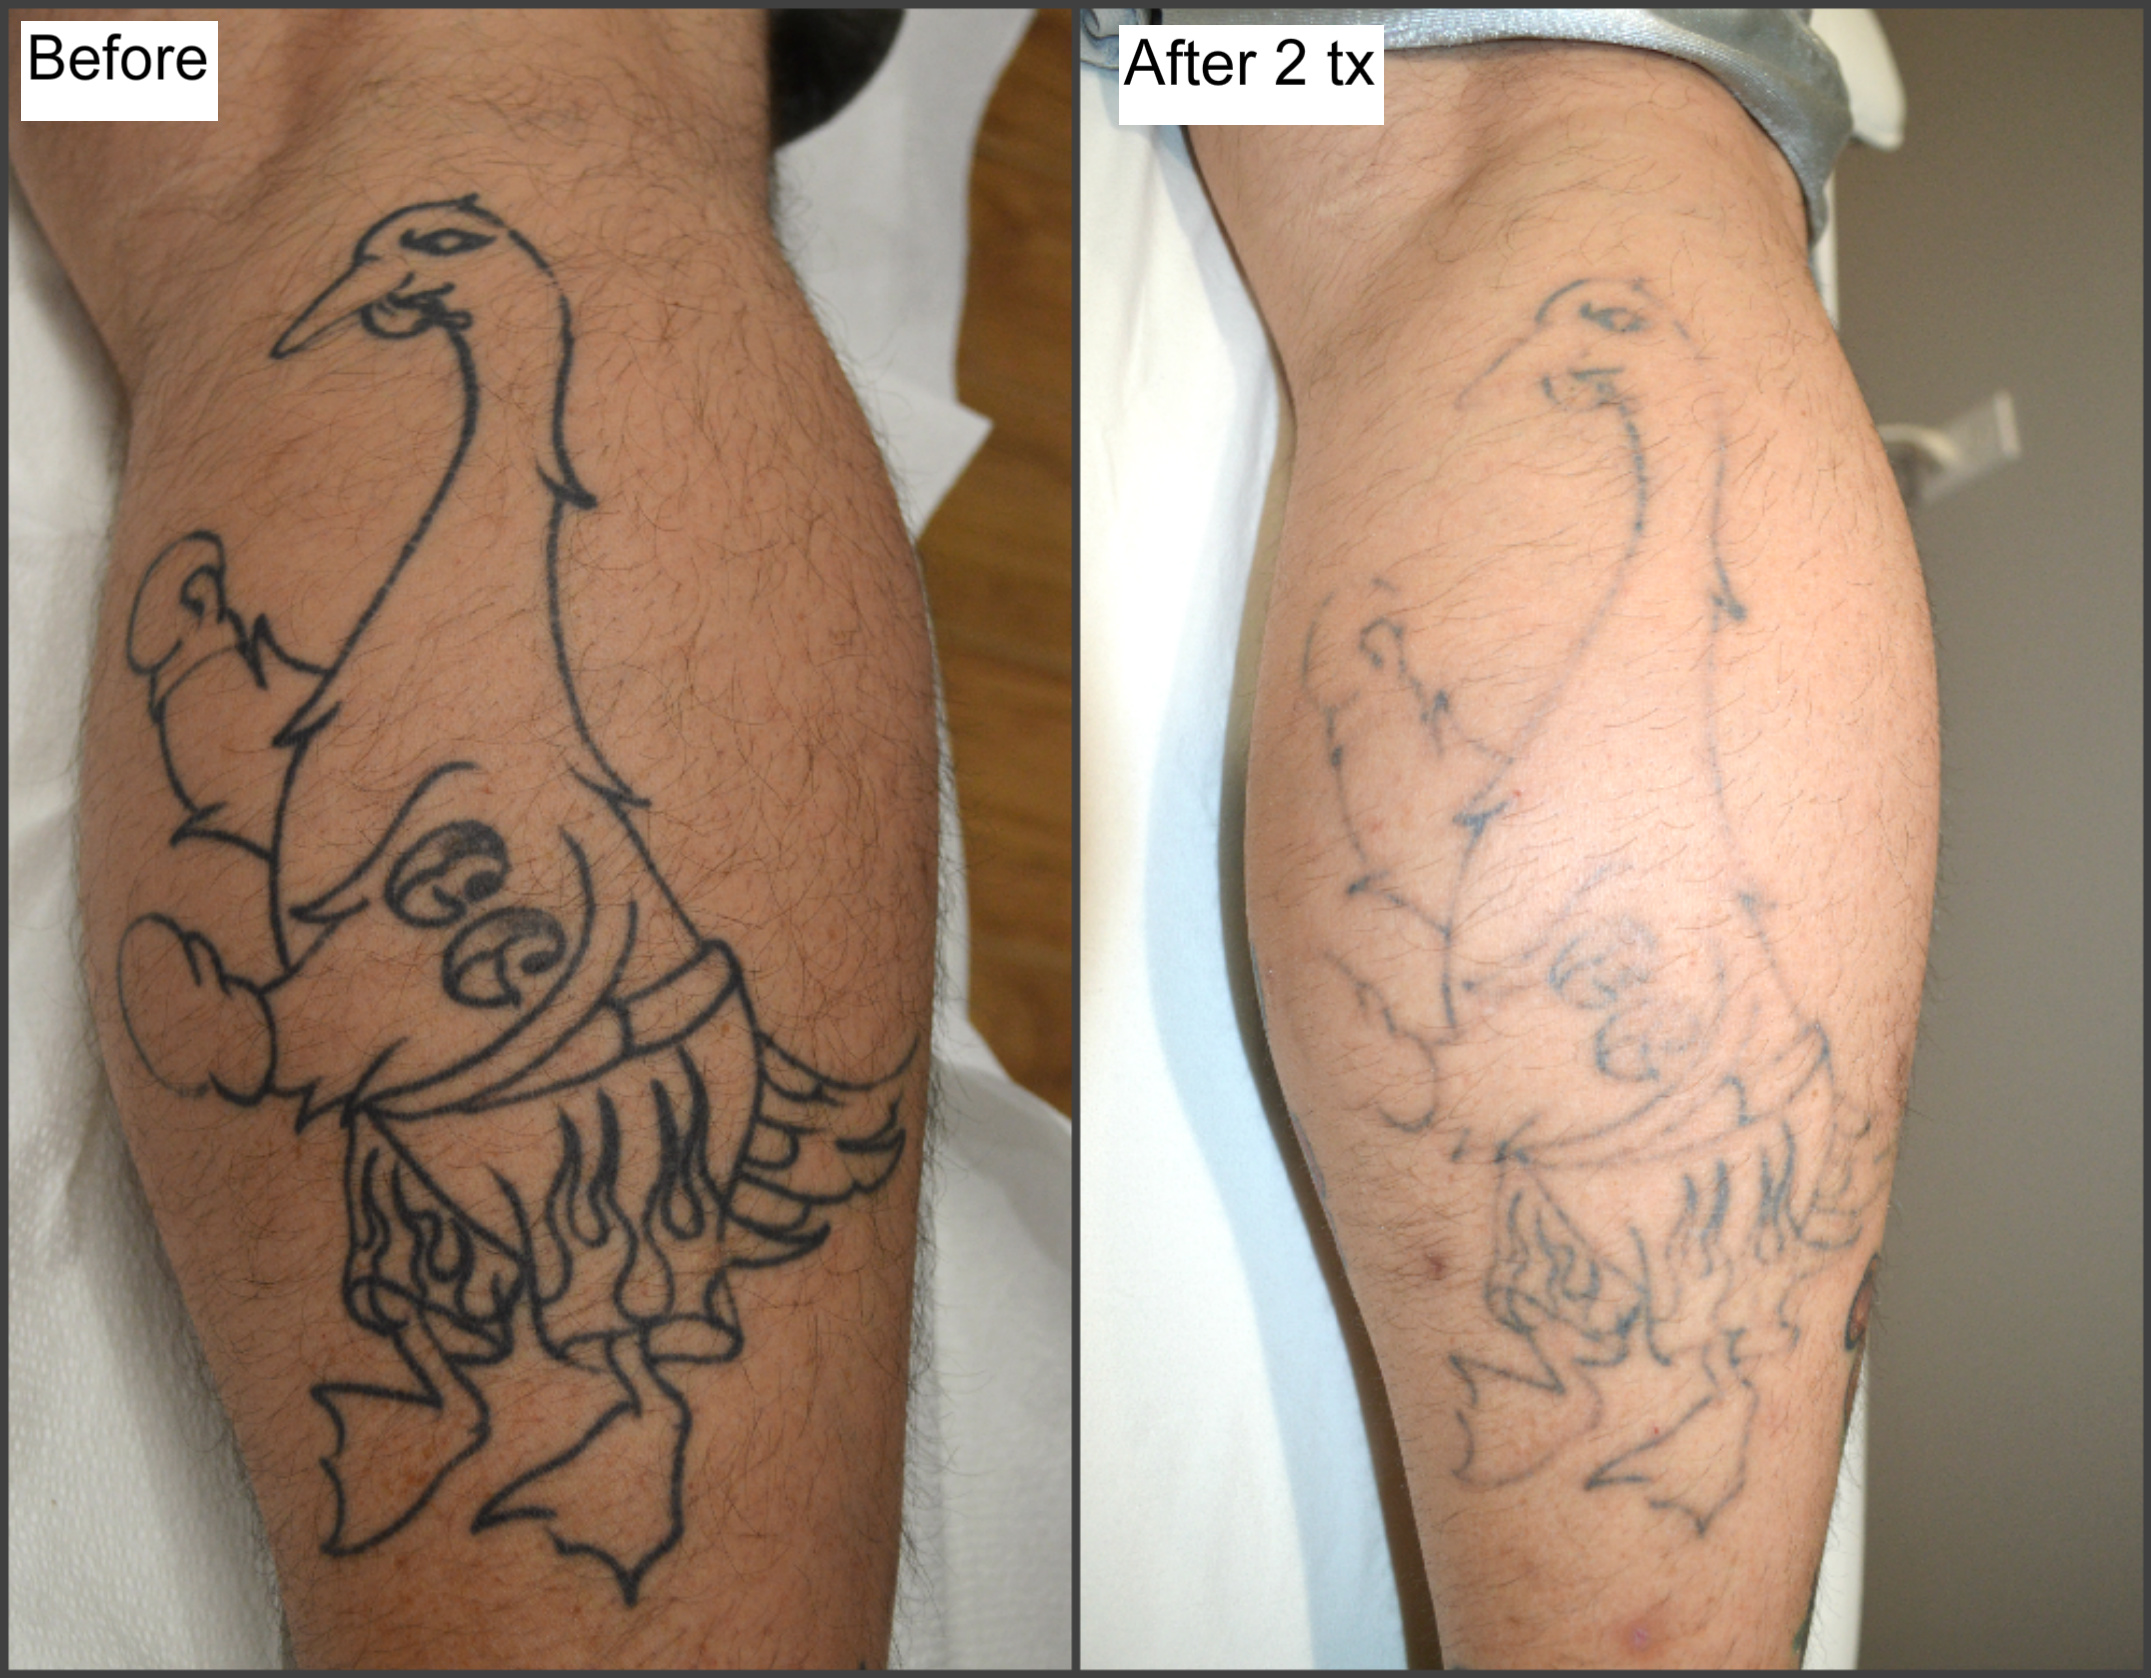 Tattoo Removal With Picosure What You Need To Learn